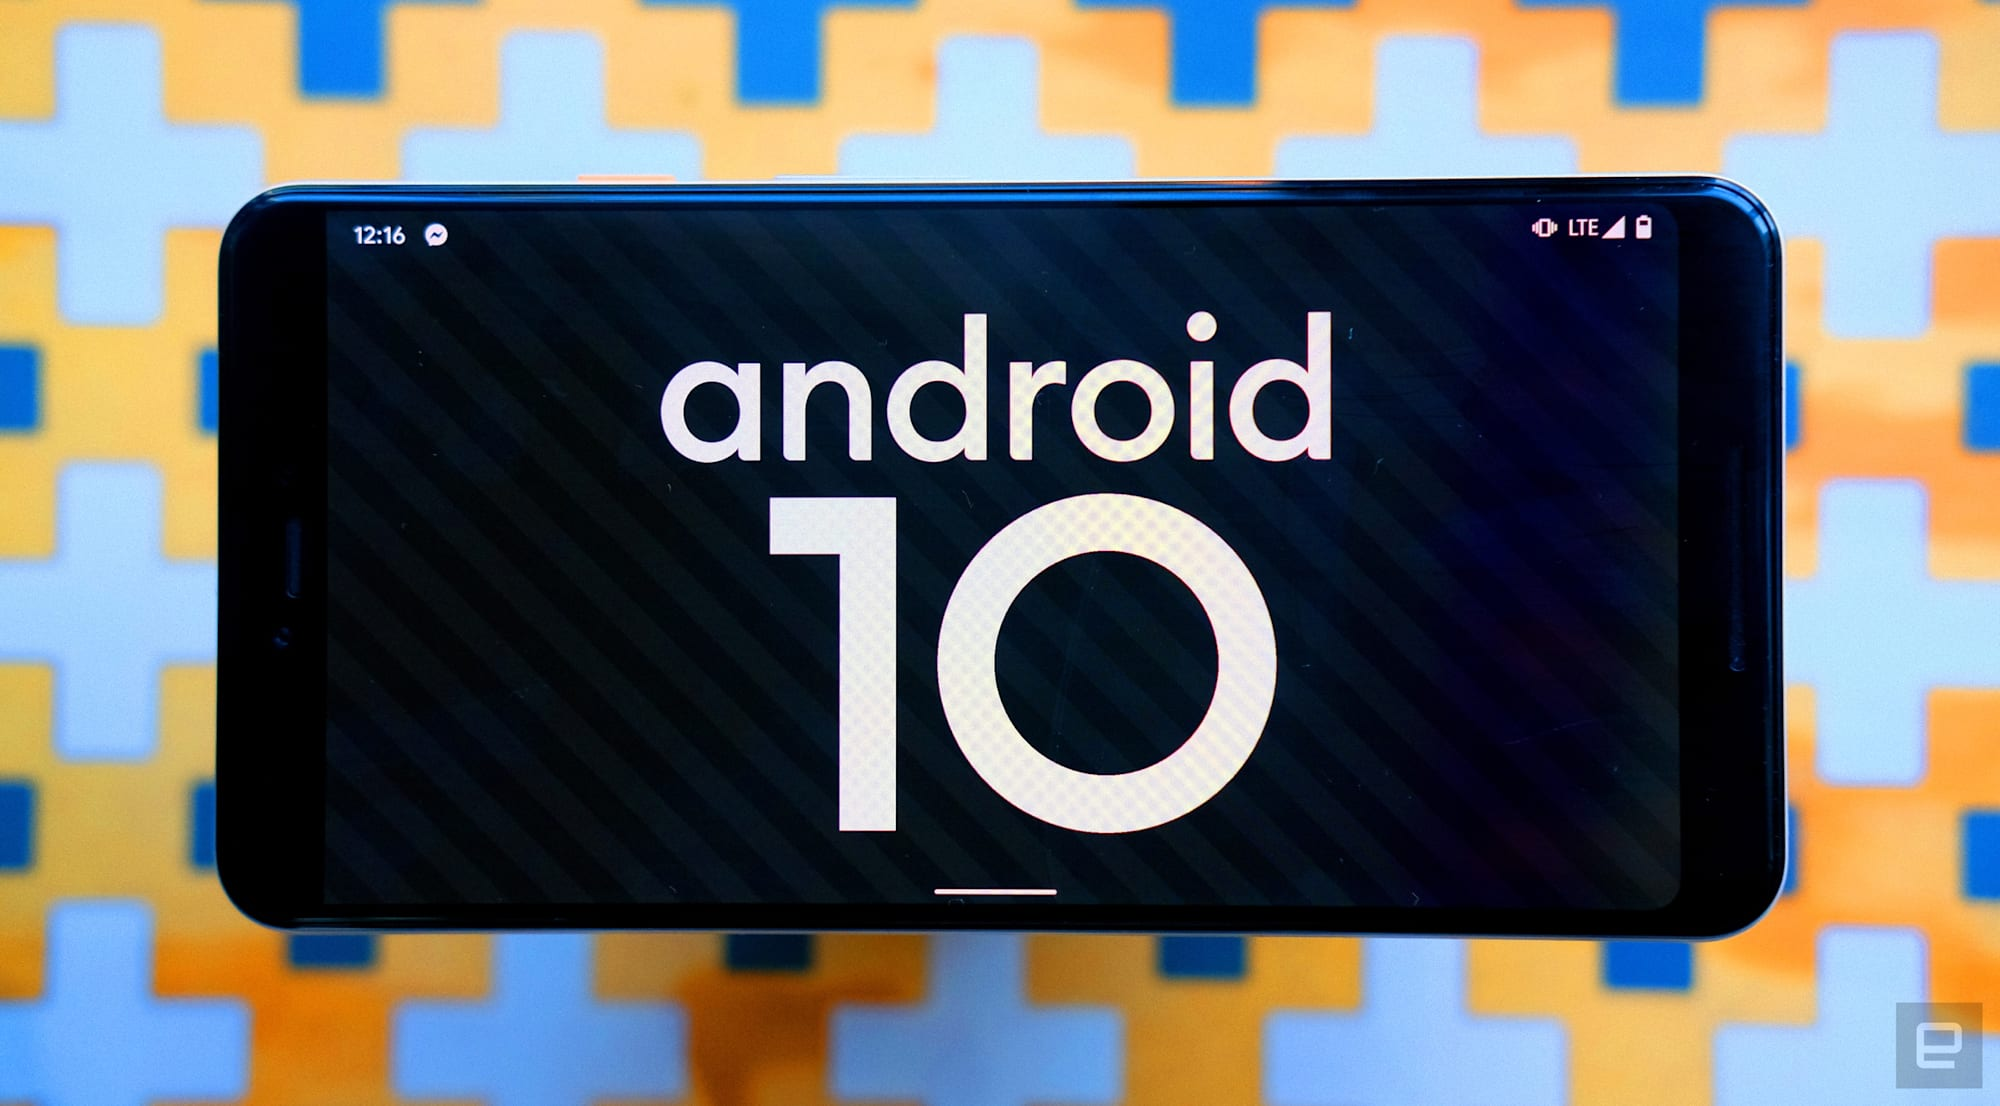 Android 10 tomorrowEngadget Android 10 reviewGood todaybetter e2bEDH9WIY